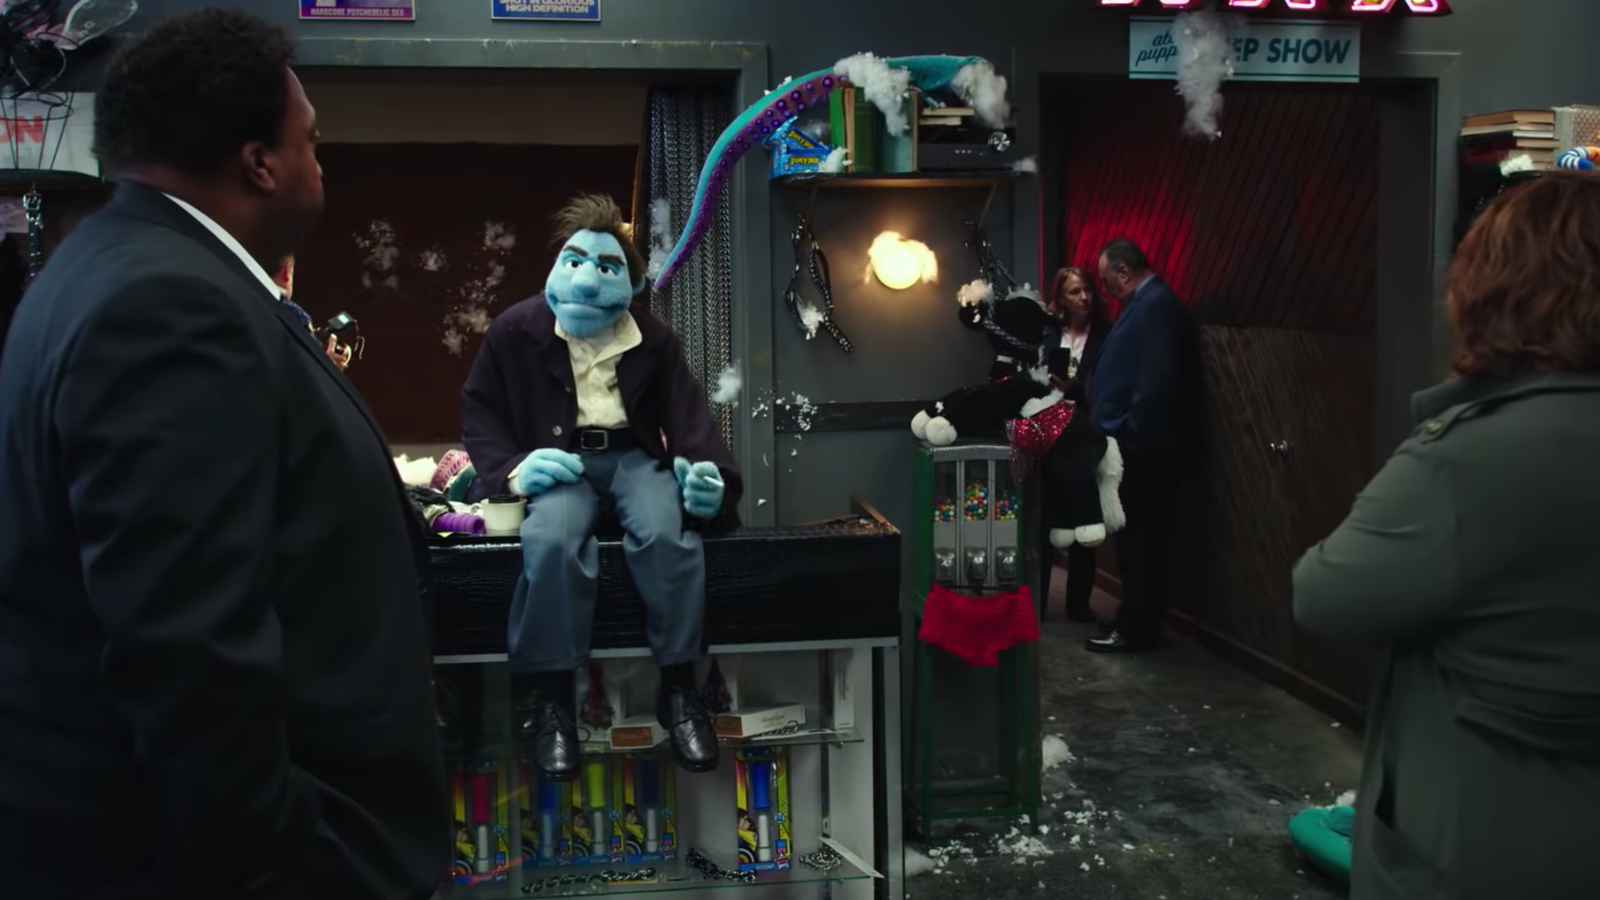 Concept Art from THE HAPPYTIME MURDERS Katherine Heigl may star in the film noir puppet comedy THE HAPPY TIME MURDERS directed by Brian Henson